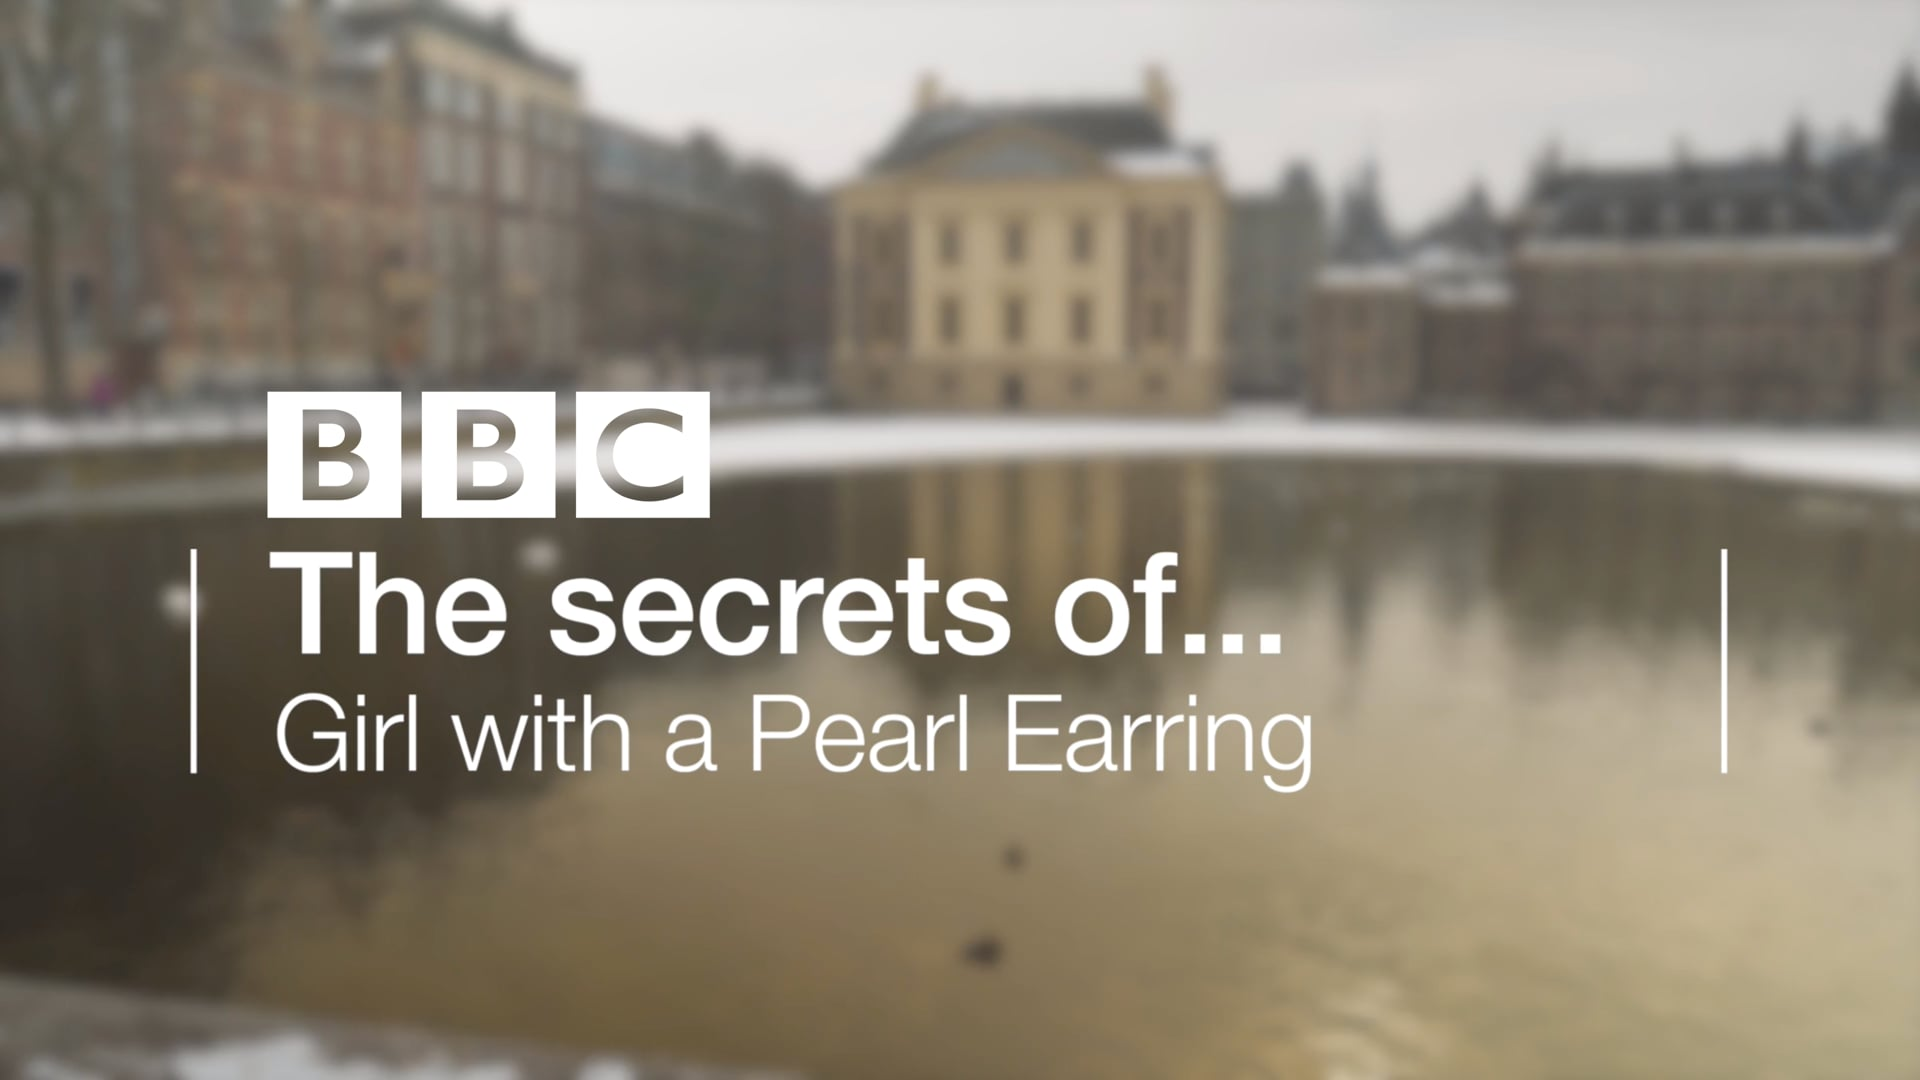 BBC - The Secrets of...Girl with a Pearl Earring